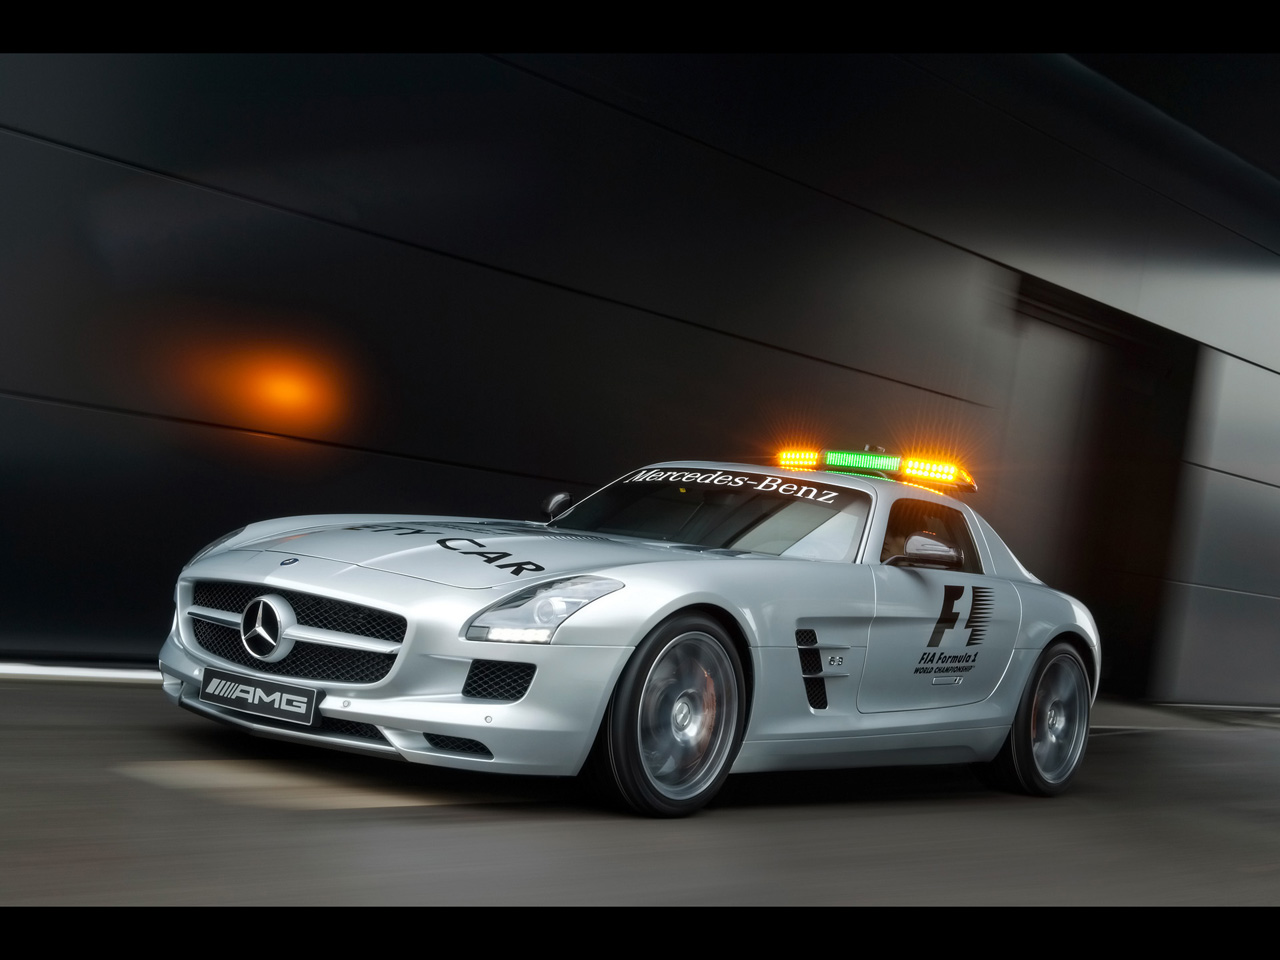 cs_safety_car_001